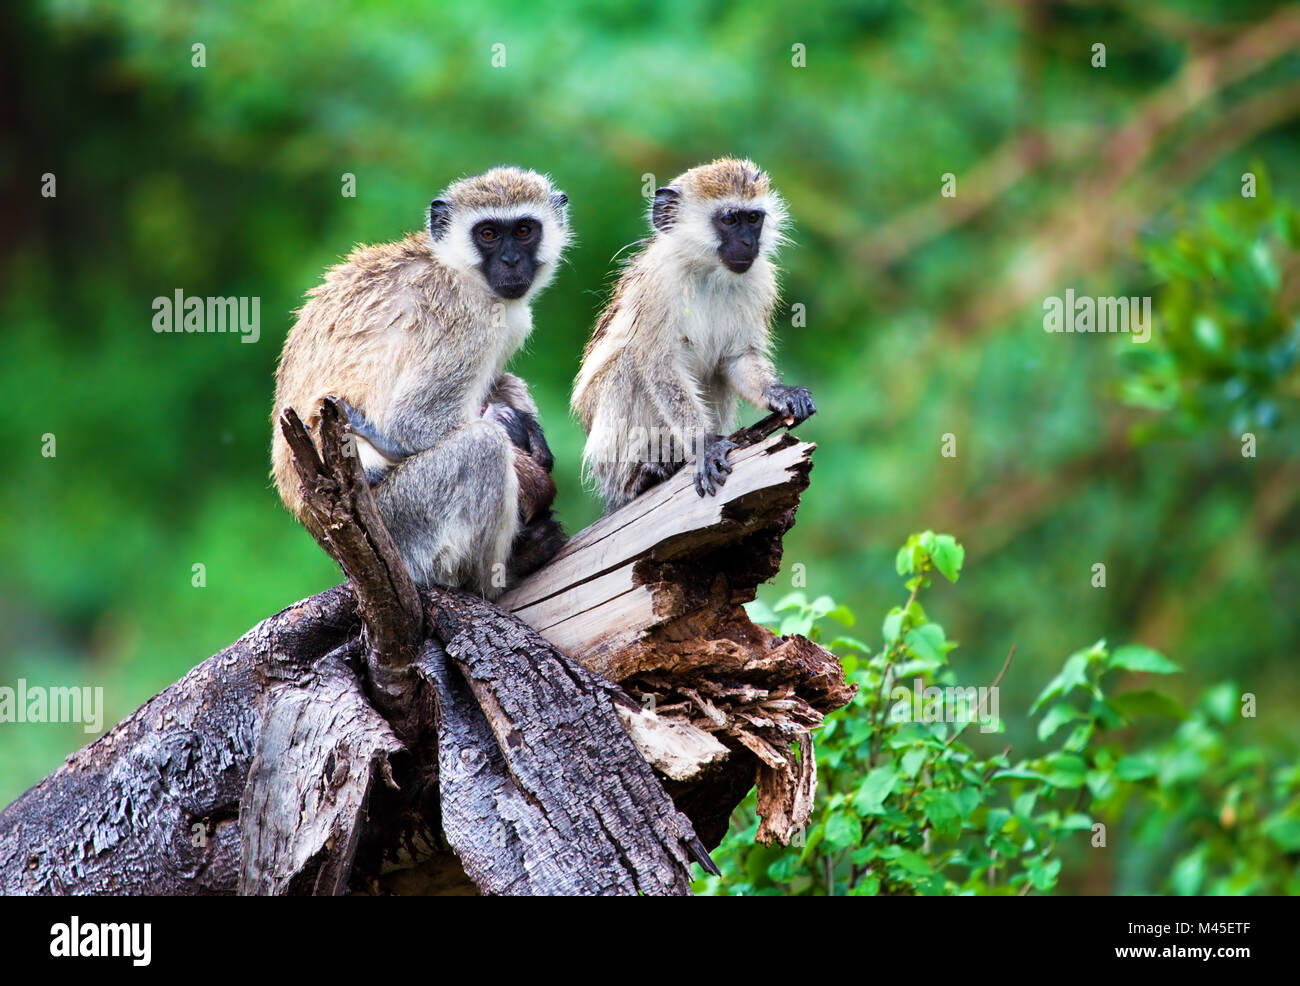 The vervet monkey, Lake Manyara, Tanzania, Africa. - Stock Image